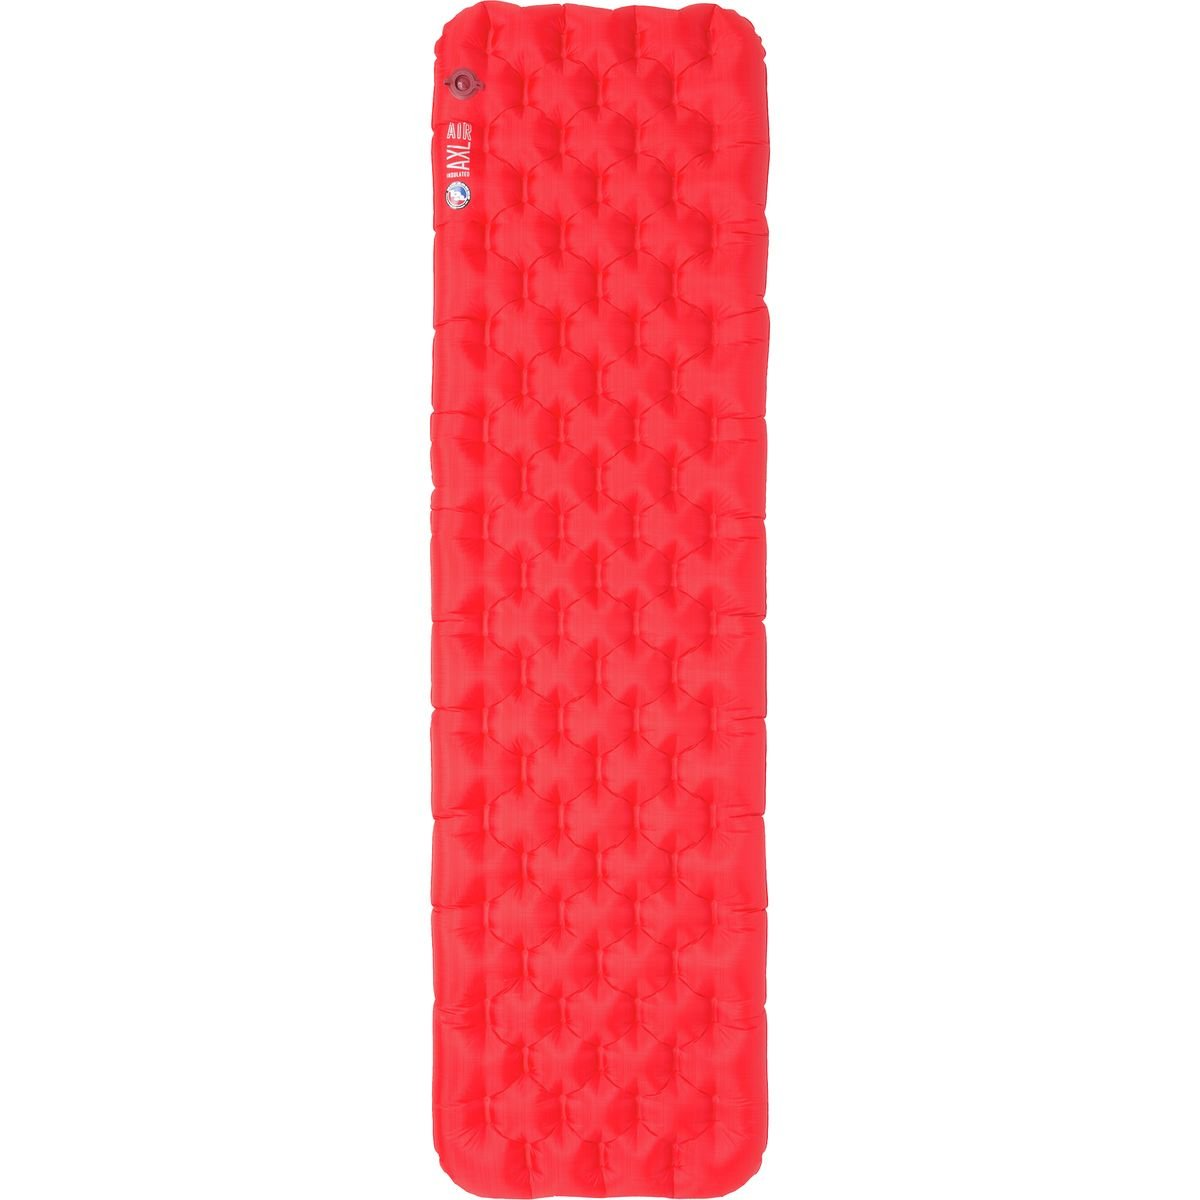 Big Agnes Insulated AXL Air Inflatable Sleeping Pad B0757TN3MY 25x78 WIDE LONG|レッド レッド 25x78 WIDE LONG